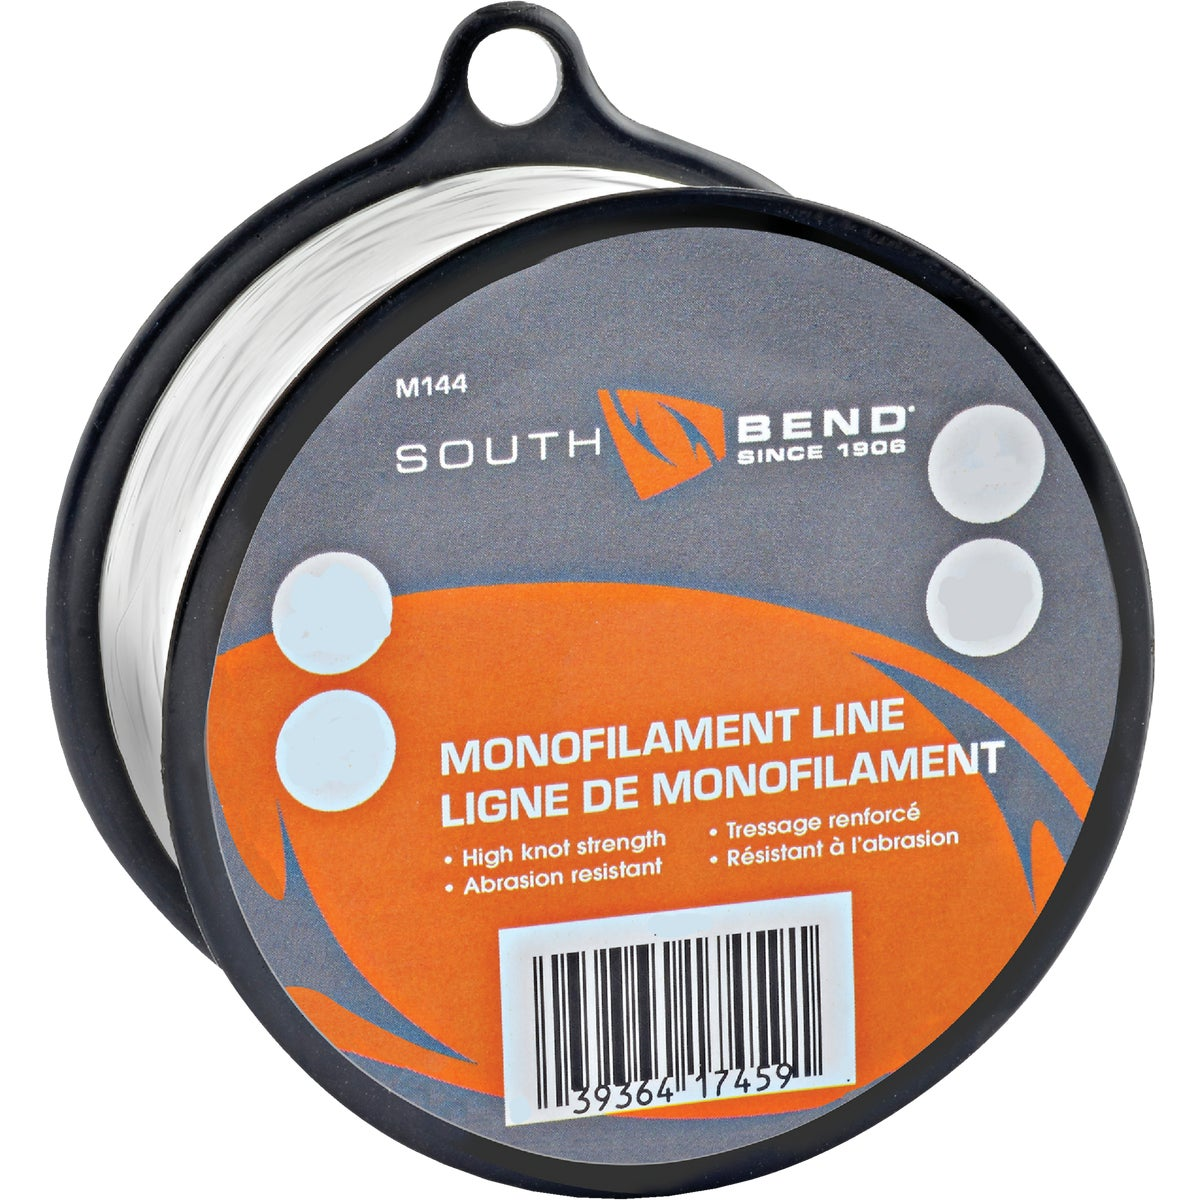 12LB 500YD MONO LINE - M1412 by South Bend Sptg Good